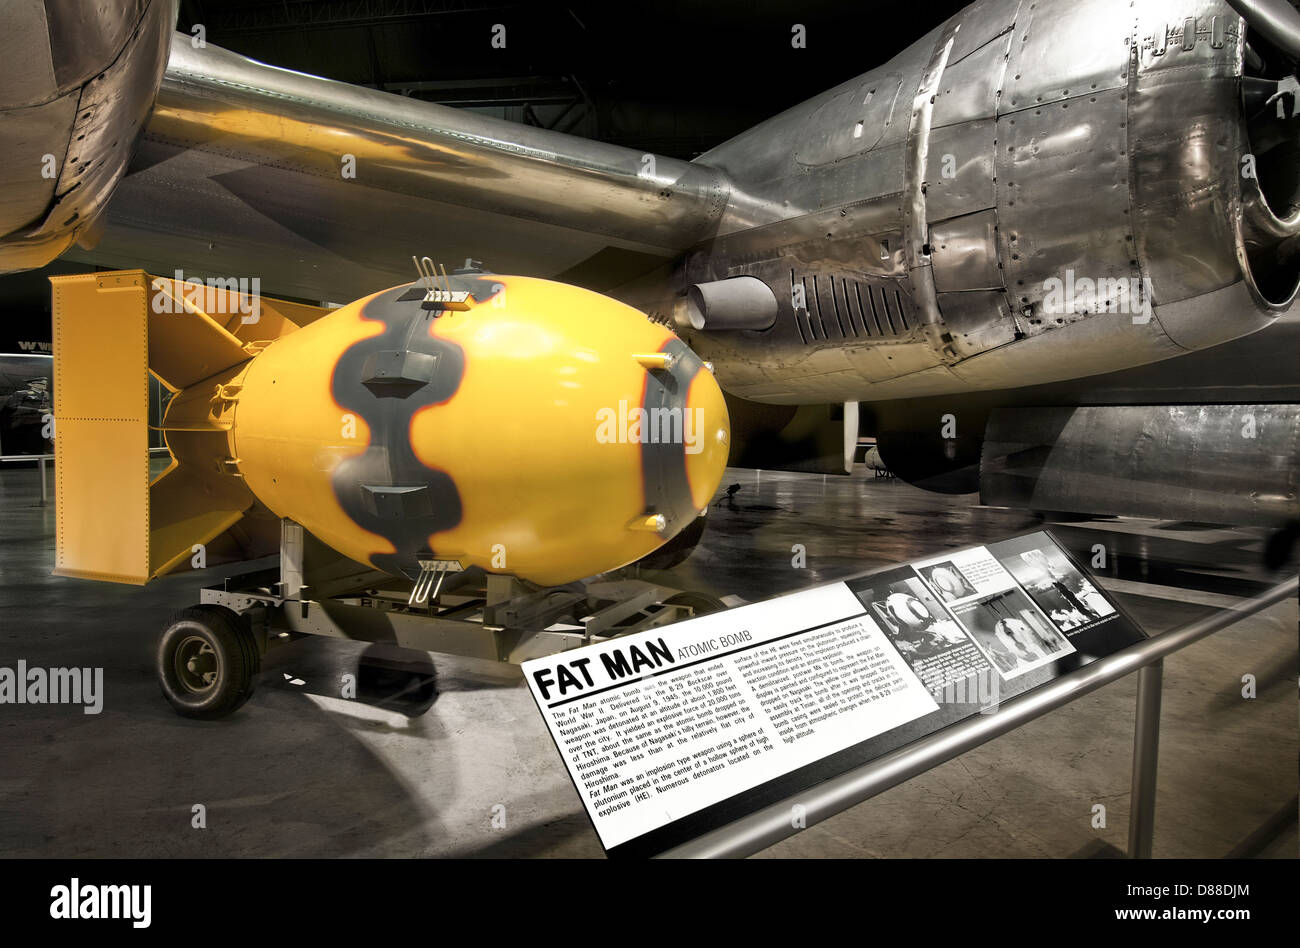 The first Atomic bomb,Fat Man,recreation at the USAF museum, Dayton Ohio - Stock Image